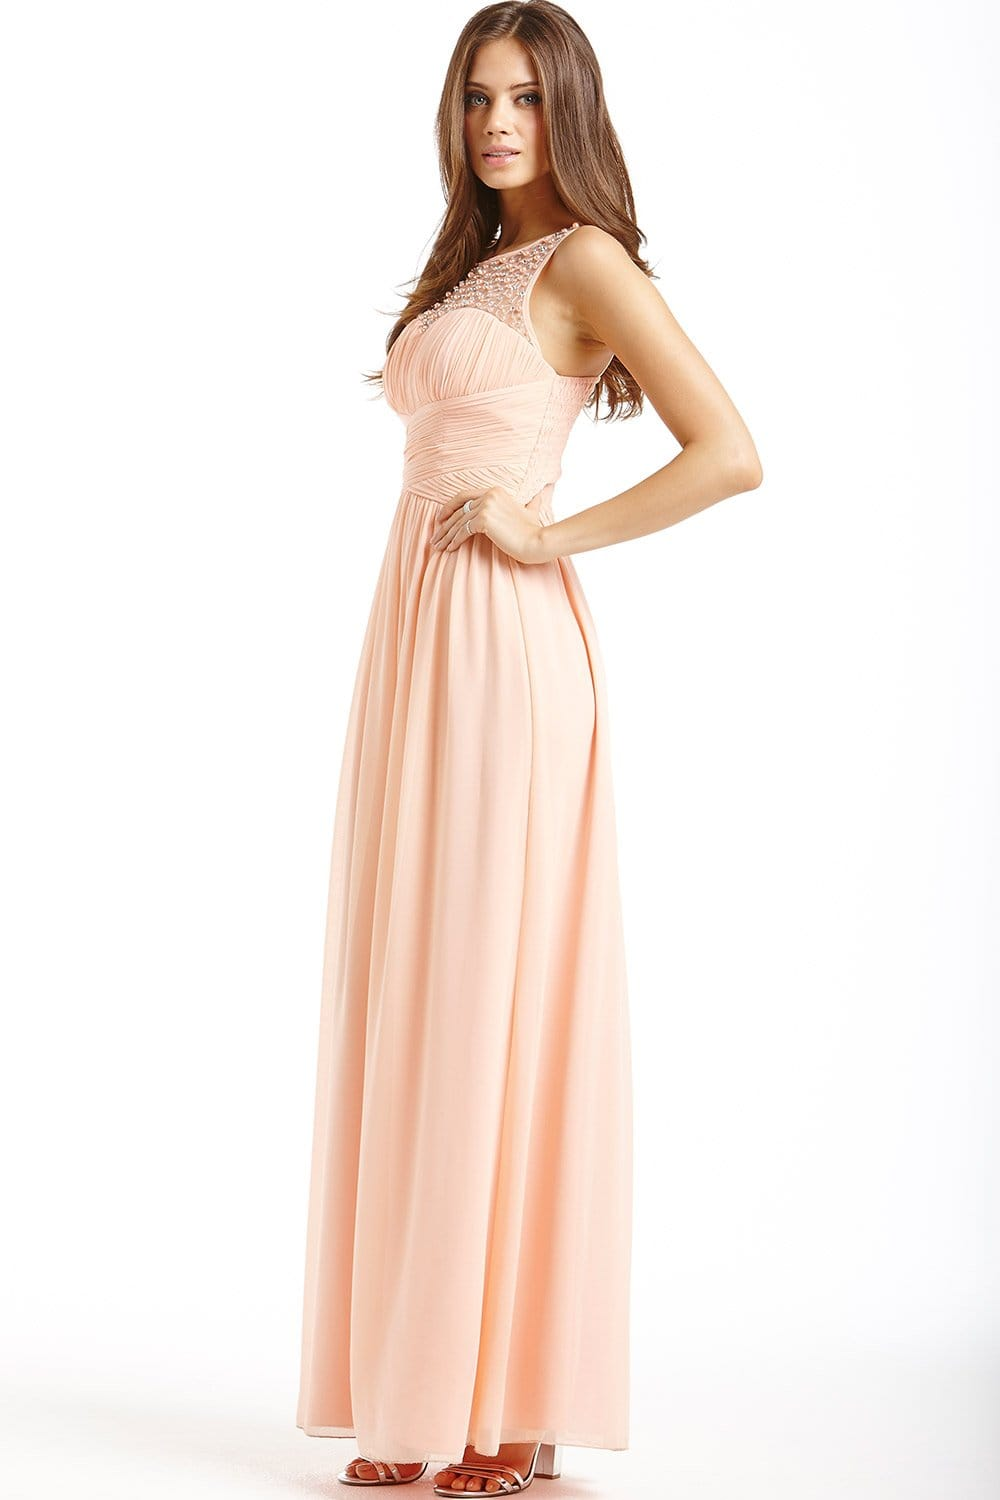 peach embellished detail maxi dress from little mistress uk